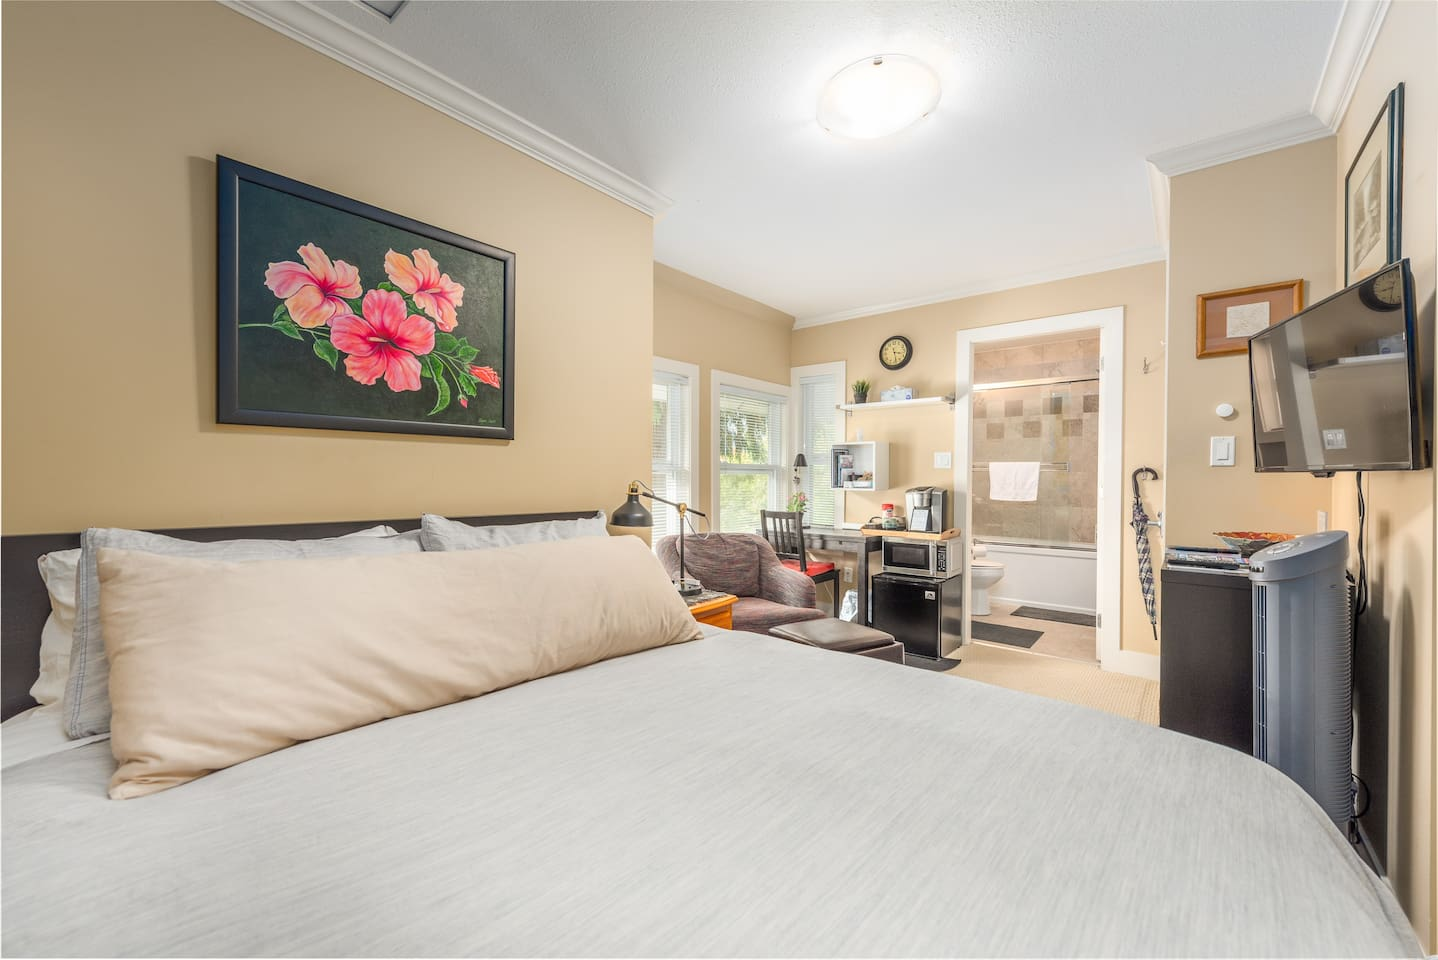 Chez AJ features 2 lovely Guest Rooms. The West Room is a bright, cozy room with Queen Bed, private bathroom, entertainment system and small seating & work area. Ideally suited for 1 guest, but certainly nice and comfy for 2. Just read the reviews!!!